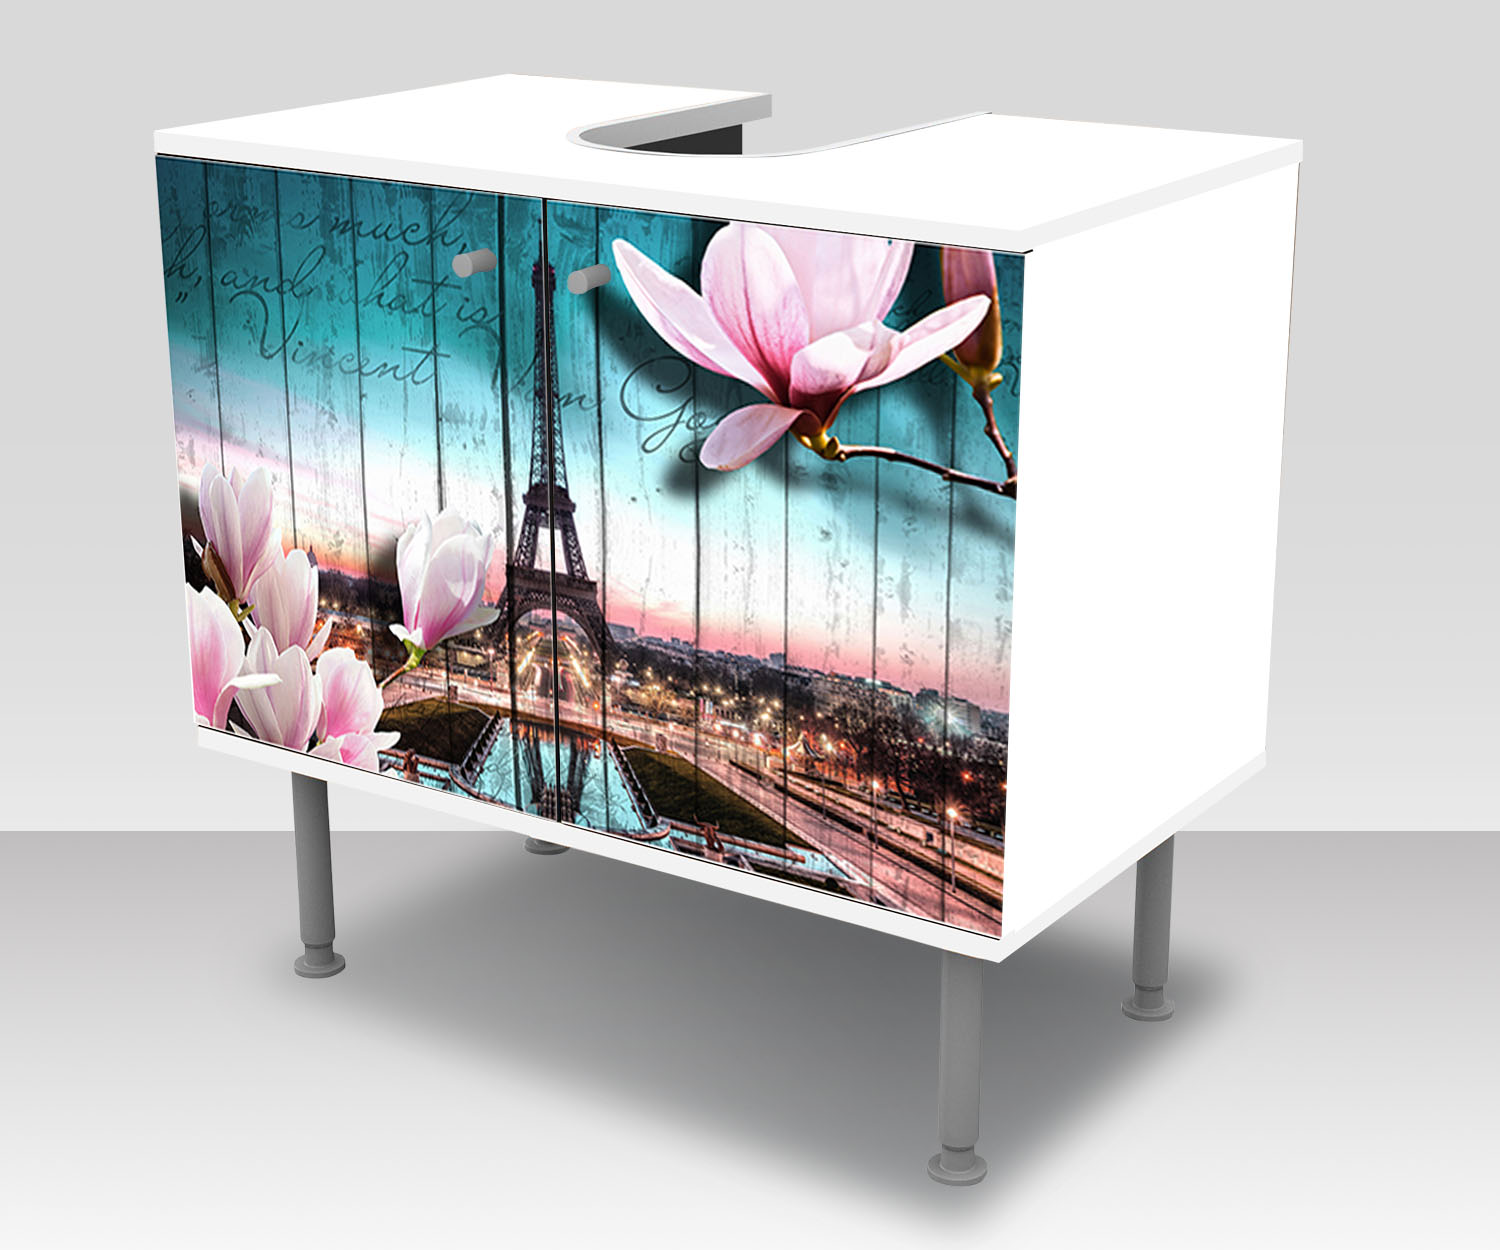 badunterschrank holz bl ten paris eiffelturm designschrank bad ebay. Black Bedroom Furniture Sets. Home Design Ideas